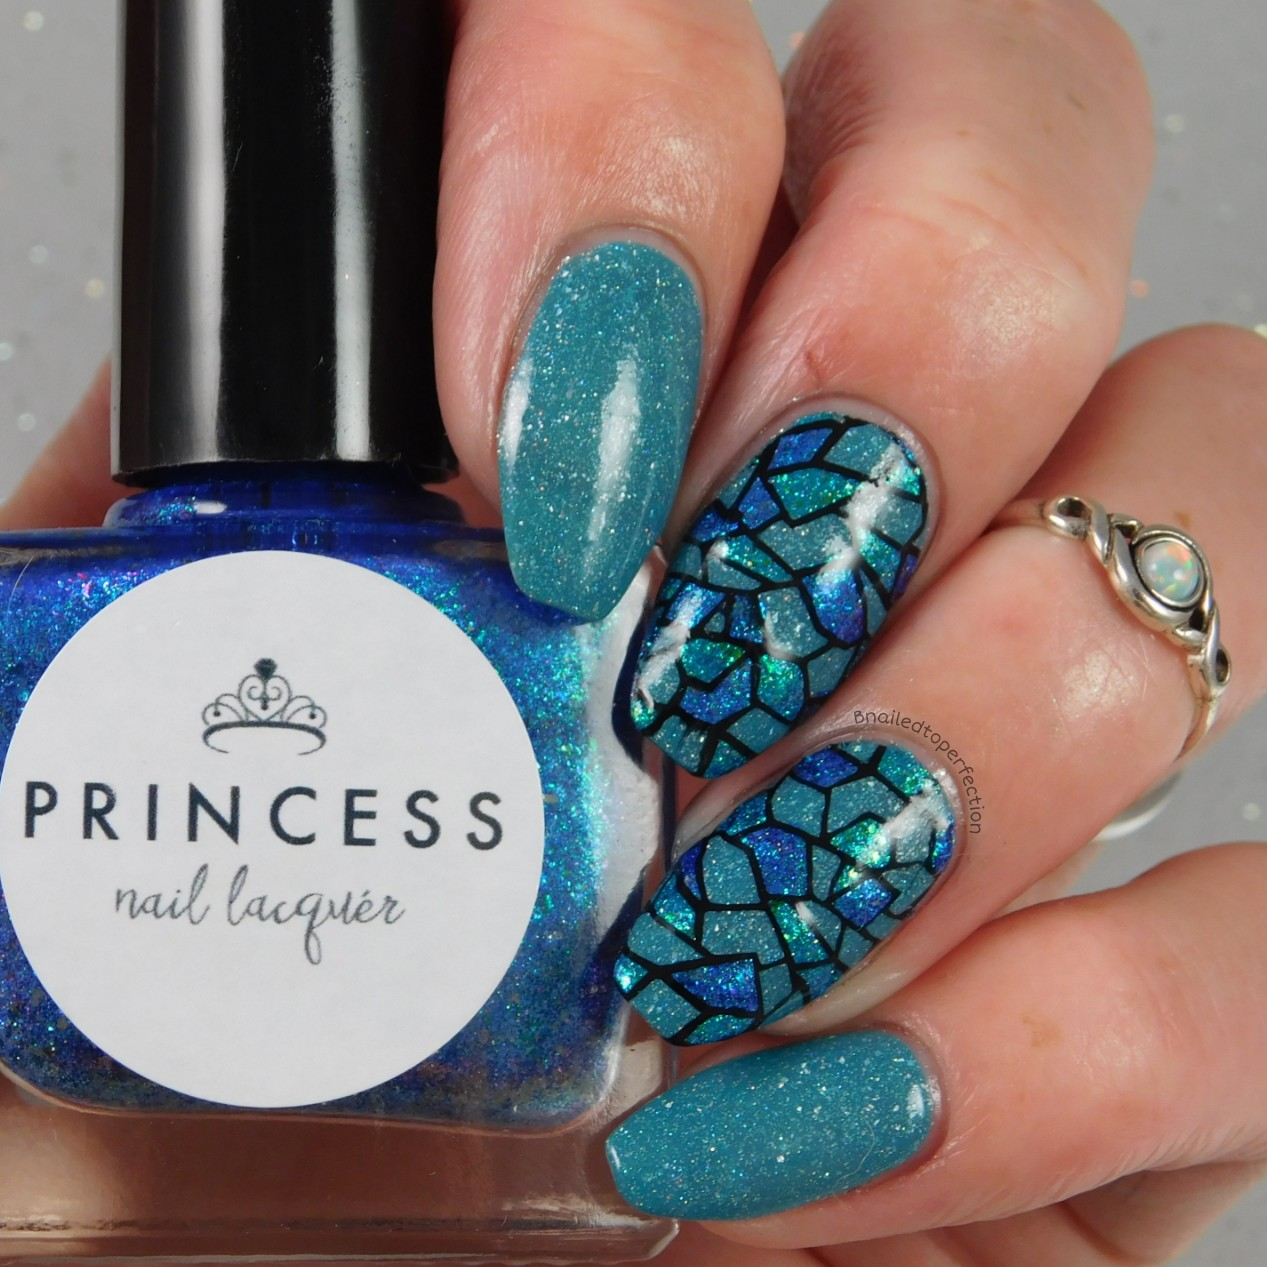 B nailed to perfection 26 great nail art ideas your signature style 26 great nail art ideas your signature style prinsesfo Choice Image